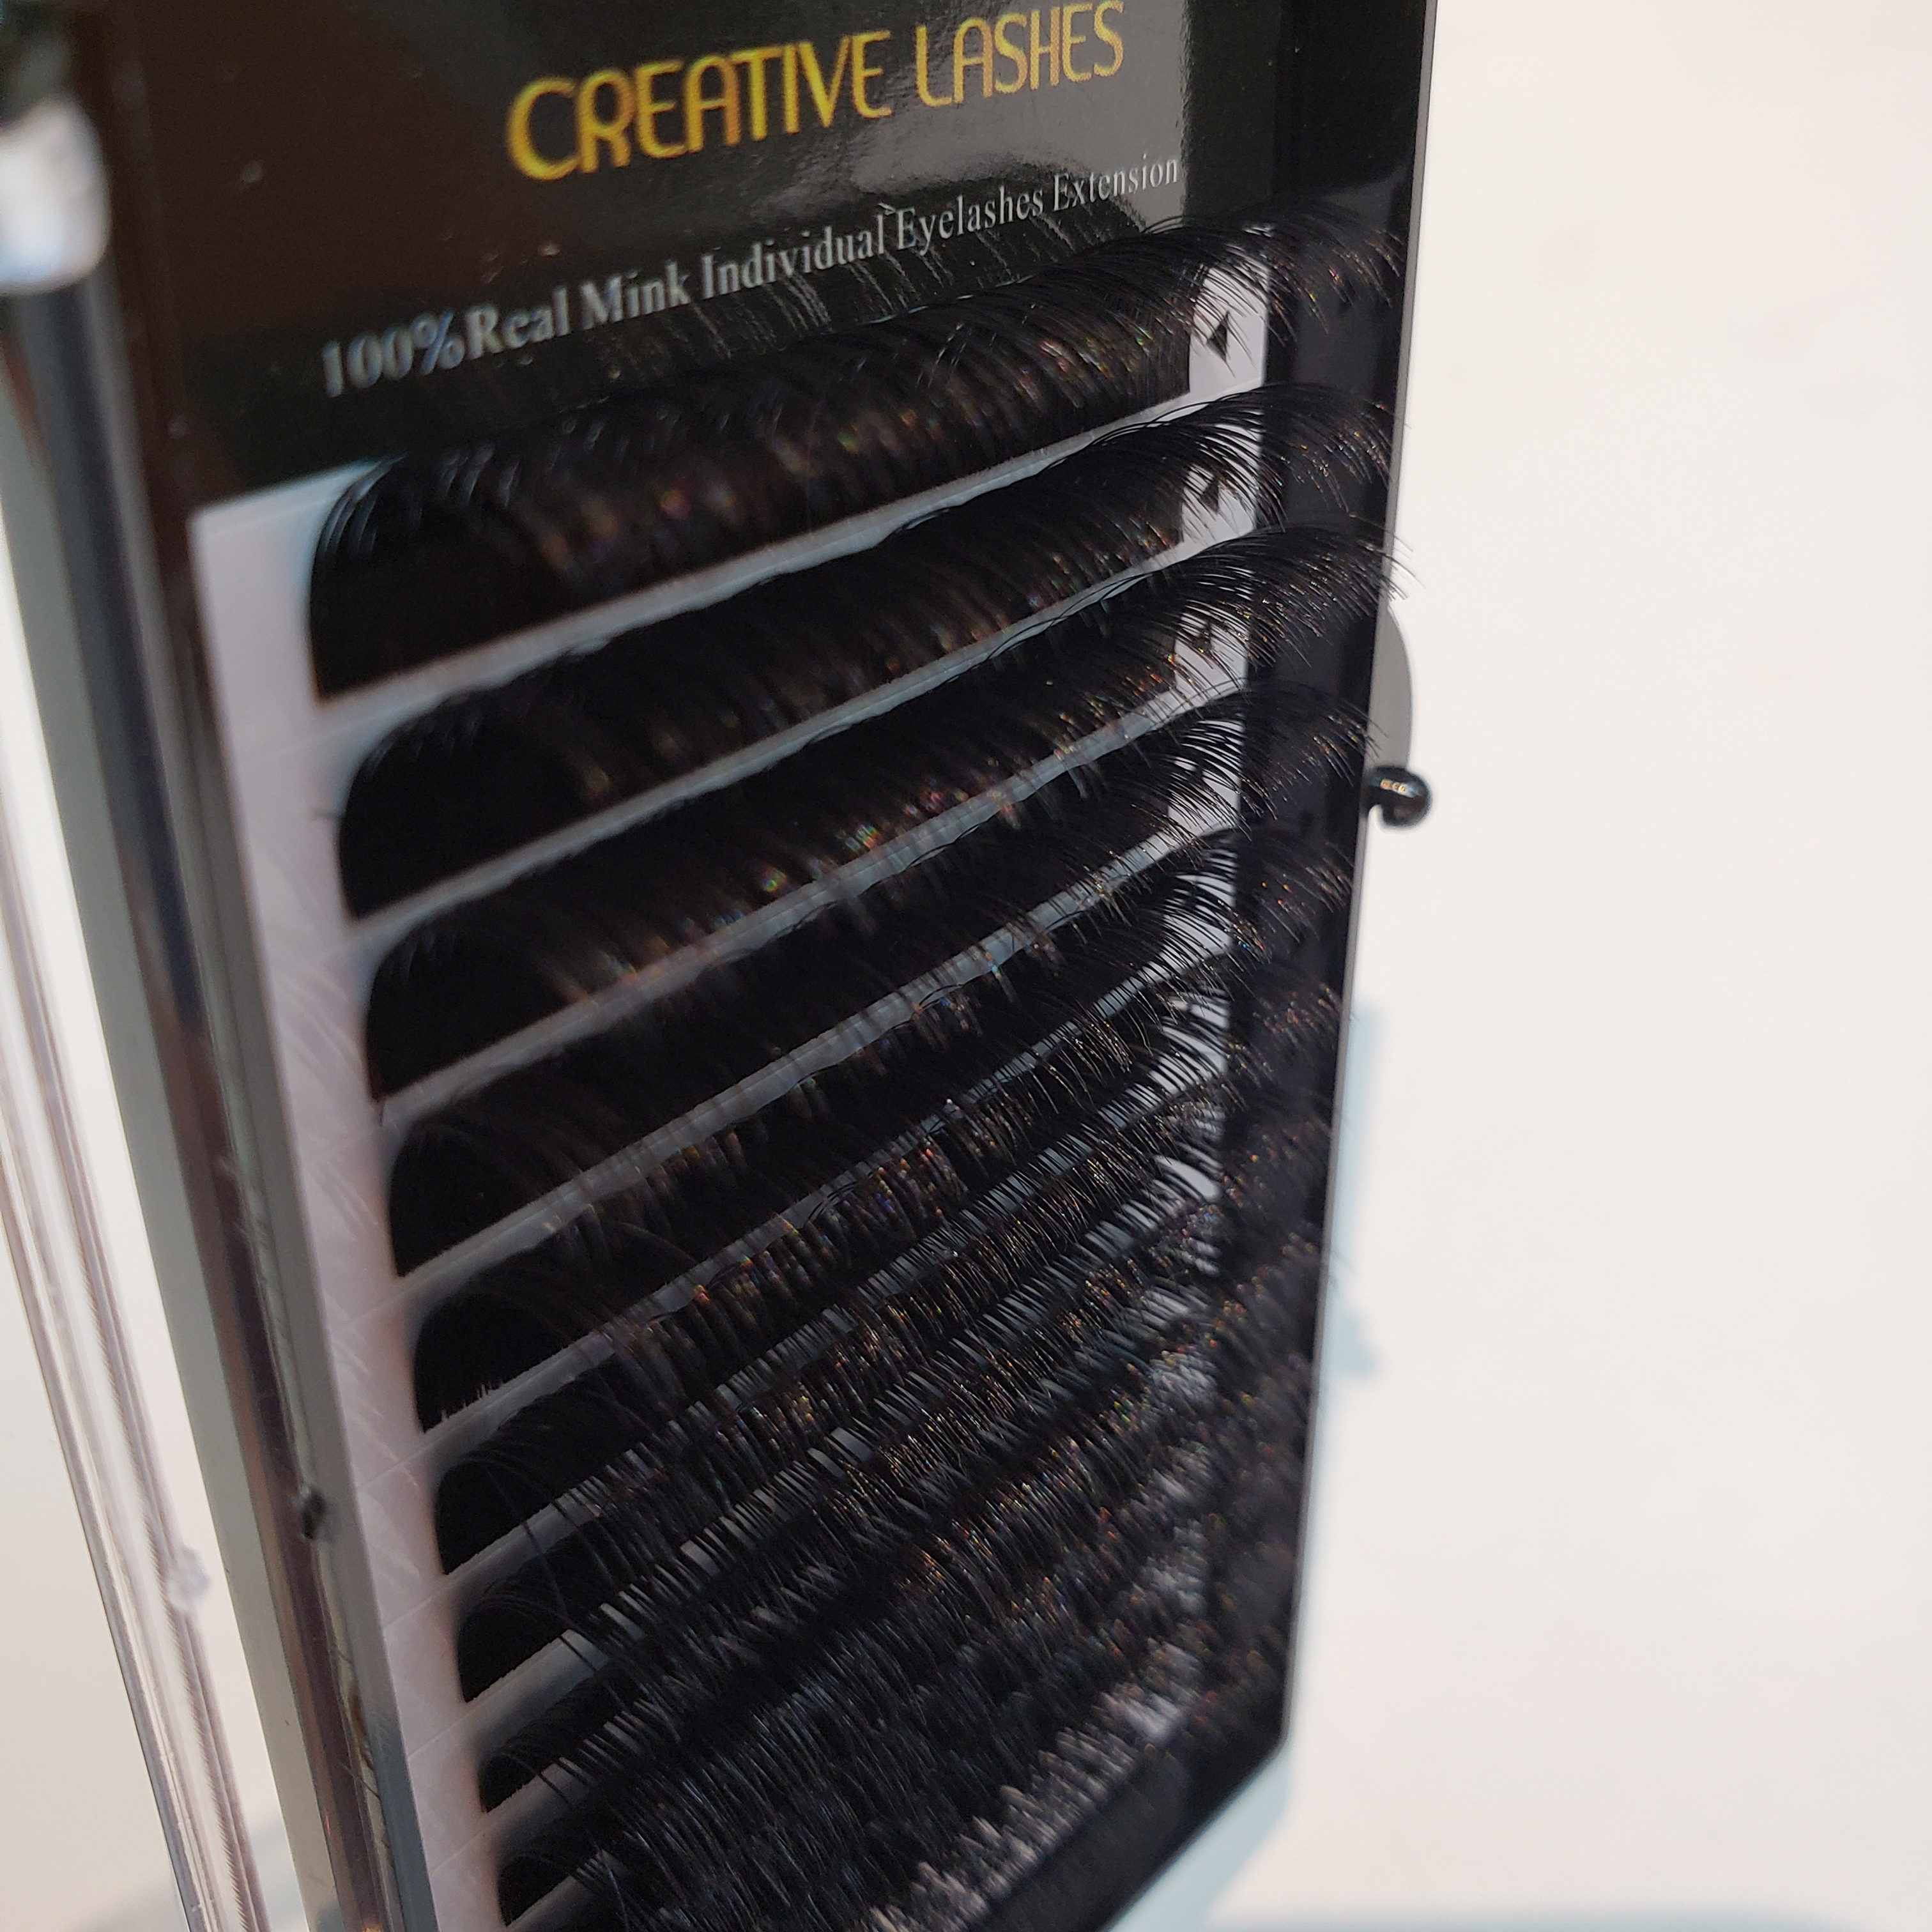 creative Lashes 100% Real Mink D curl Individual Eyelashes Extensions